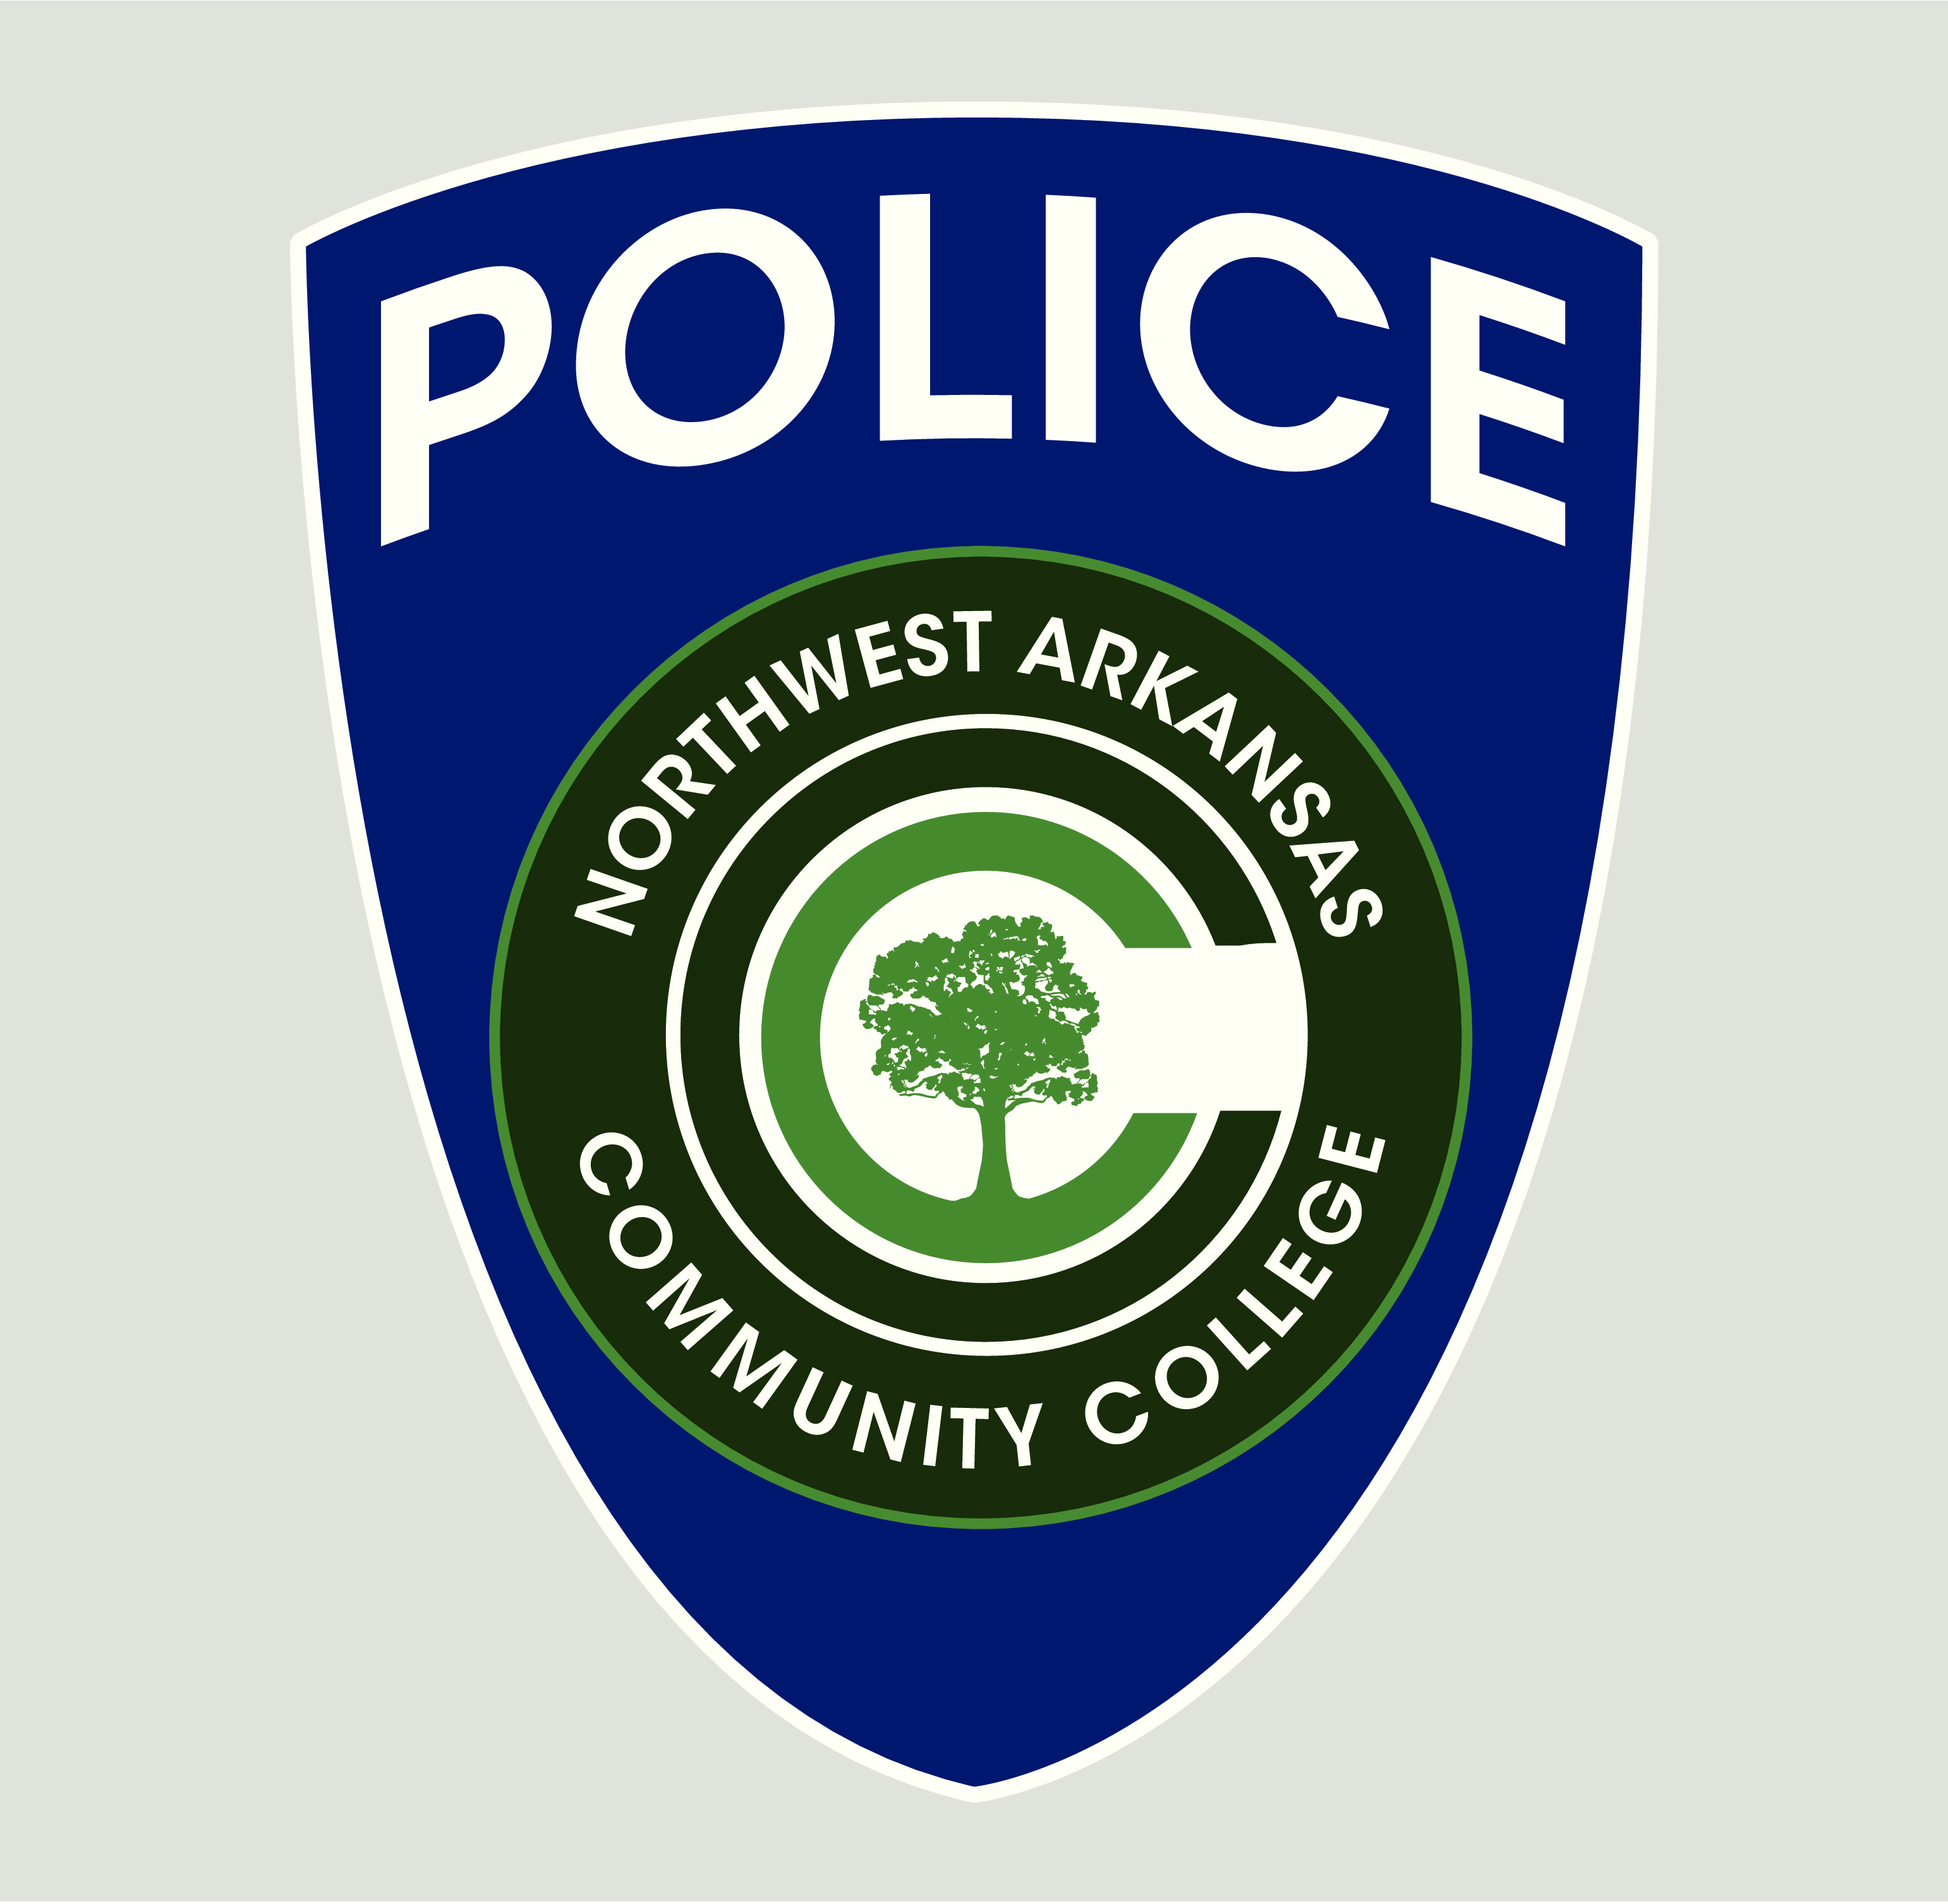 NWACC Police Badge